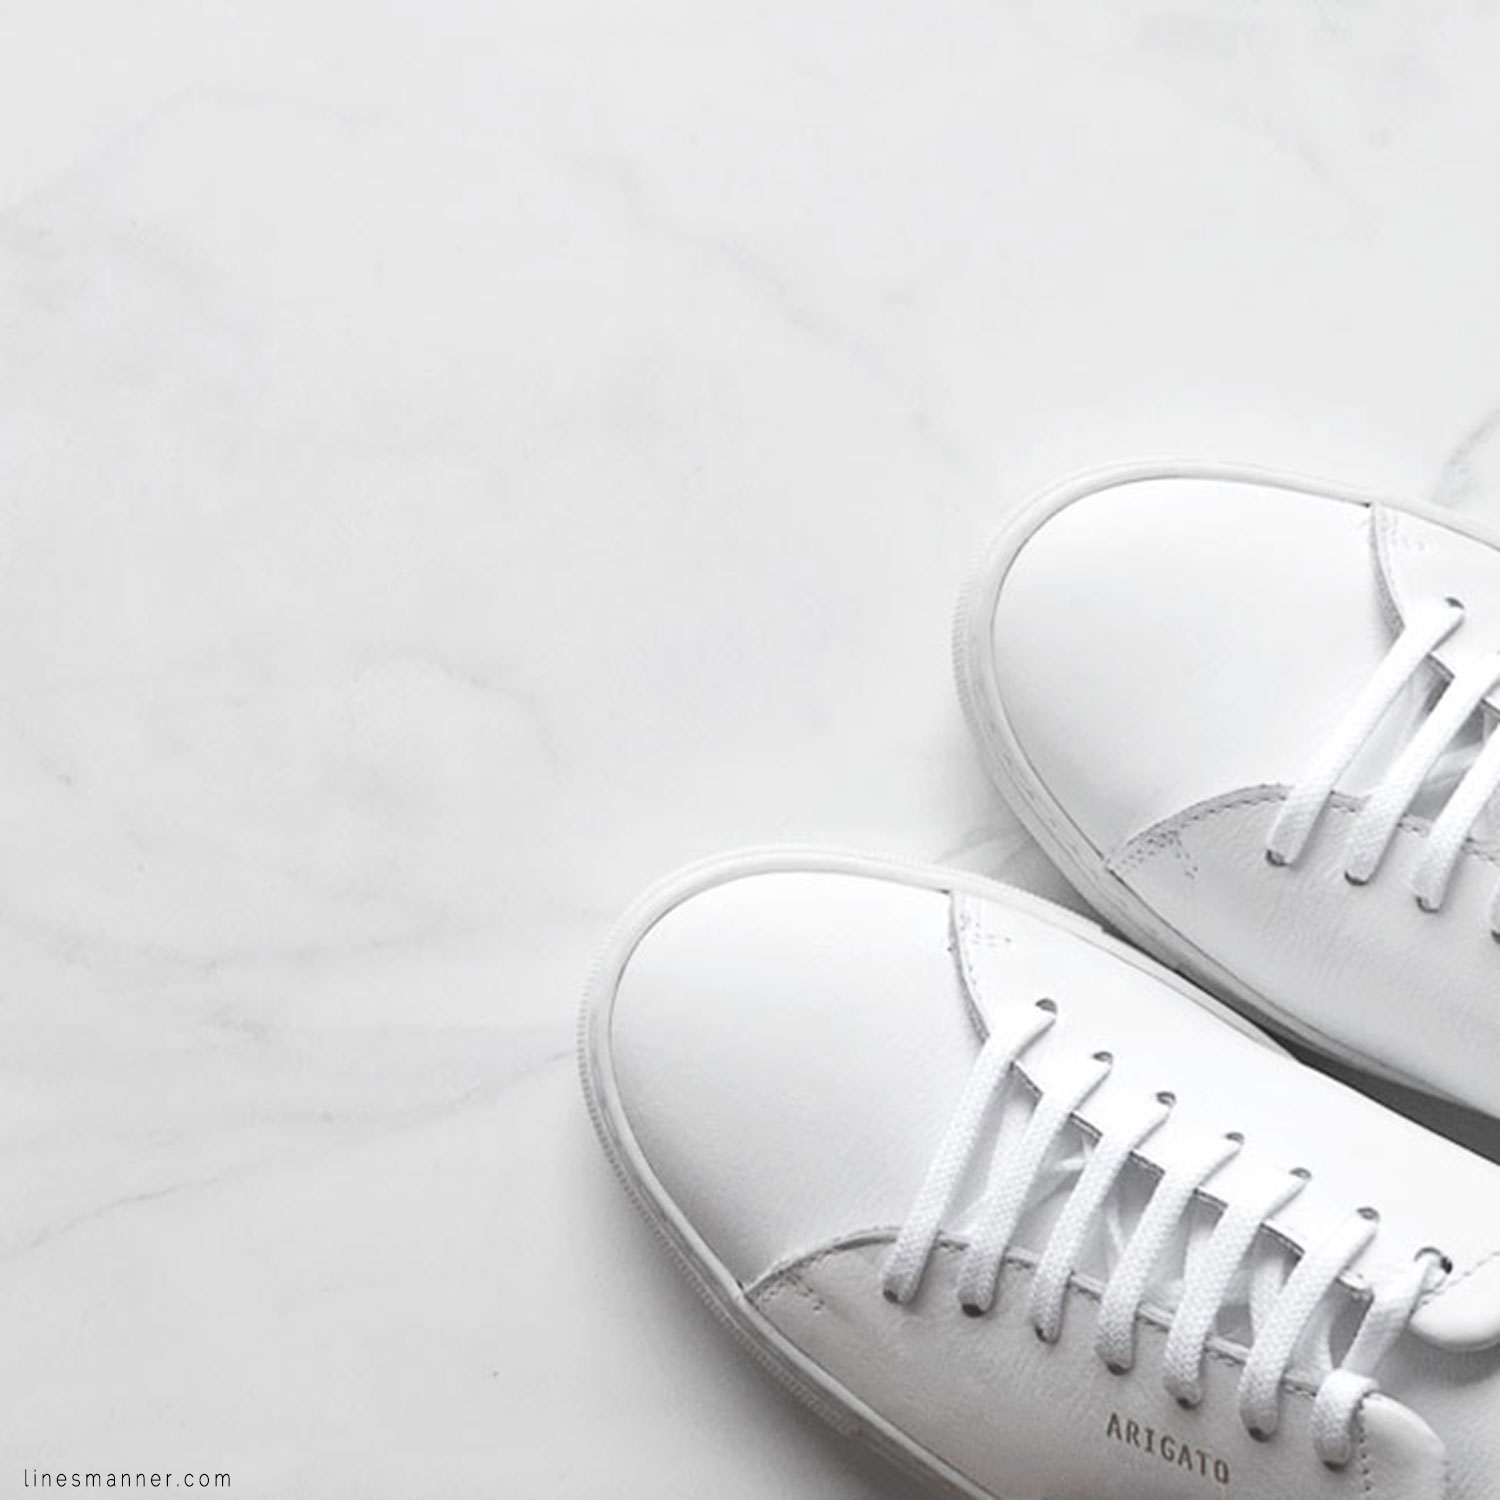 Lines-Manner-Minimal-Axel_Arigato-Sneakers-White-Essentials-Comfort-Luxe-Sporty-Edgy-Timeless-4